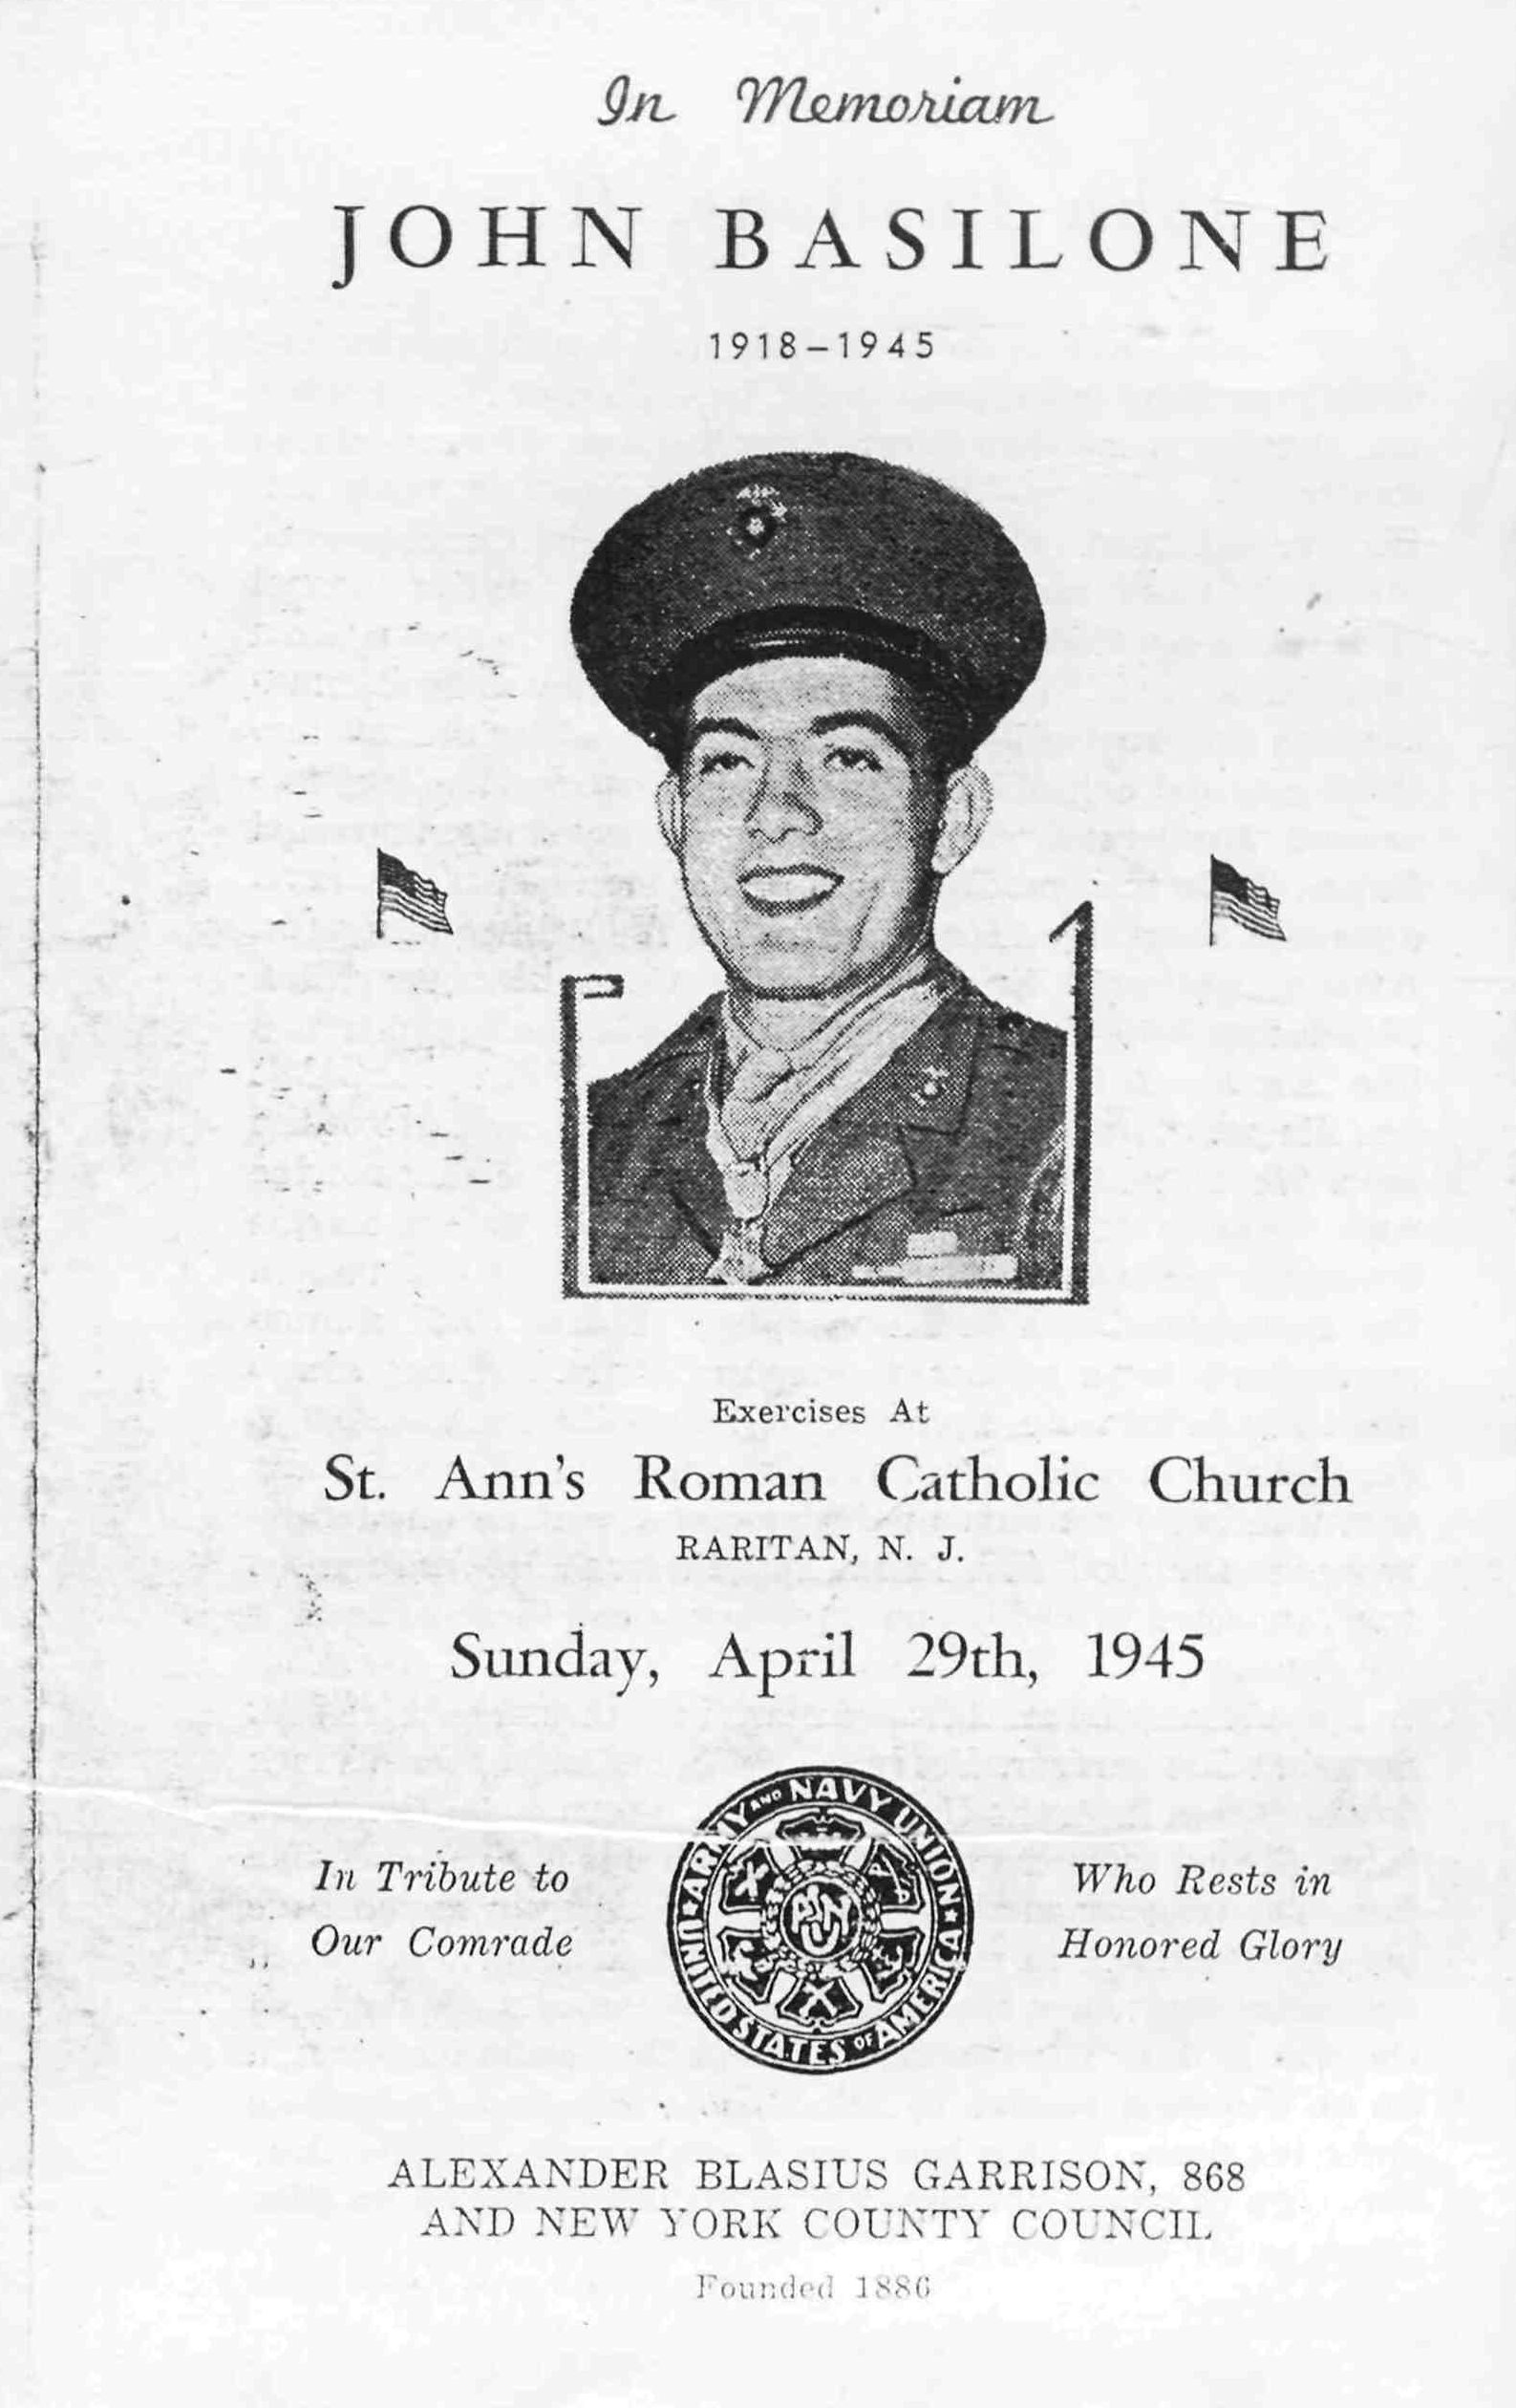 Program from 1945 Memorial Mass for John Basilone